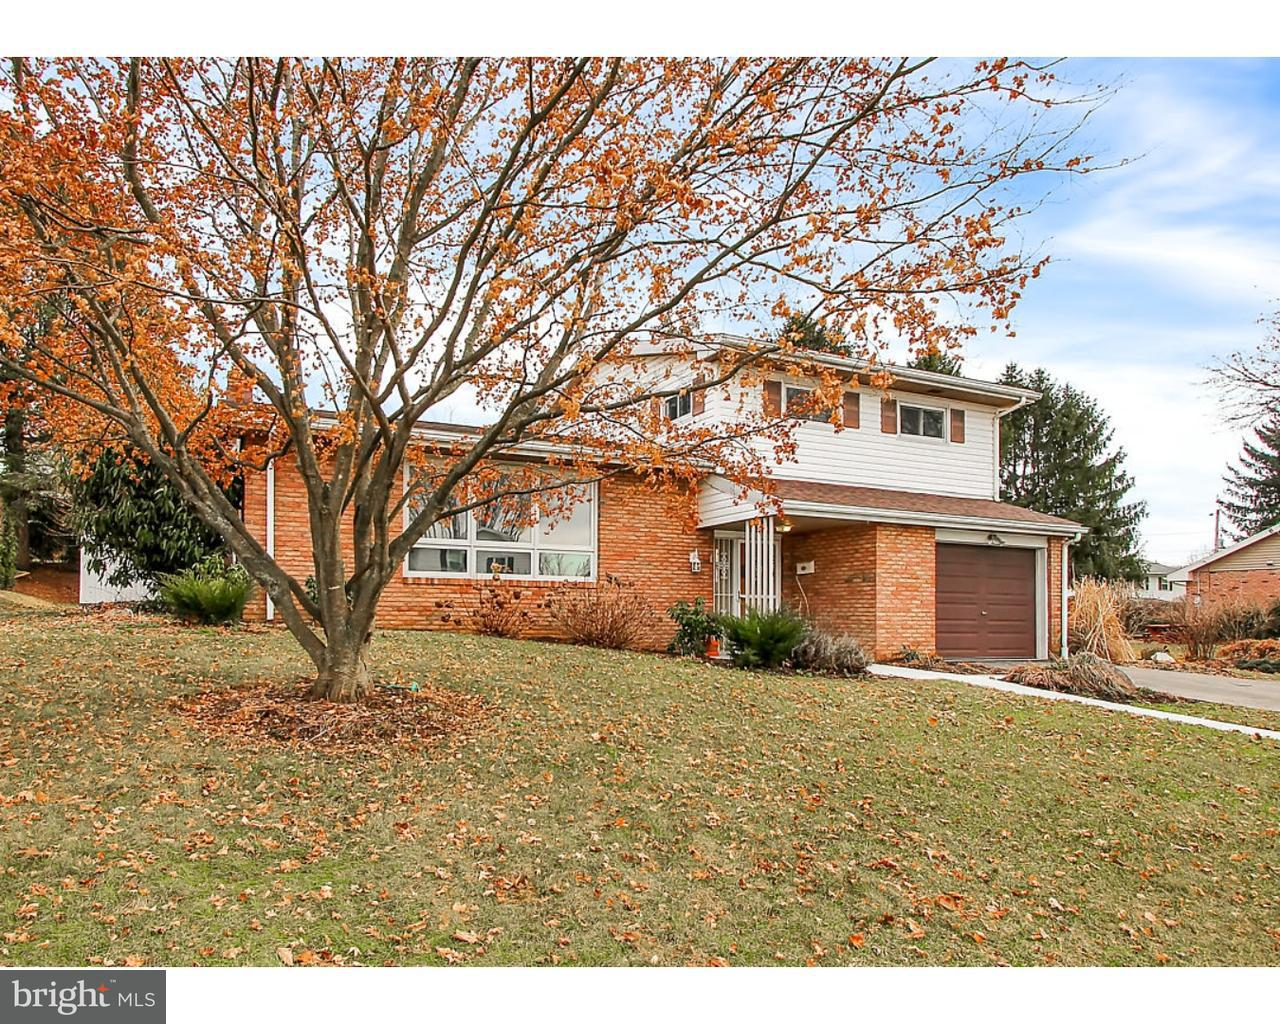 126 ASHLEY RD, READING - Listed at $209,900, READING